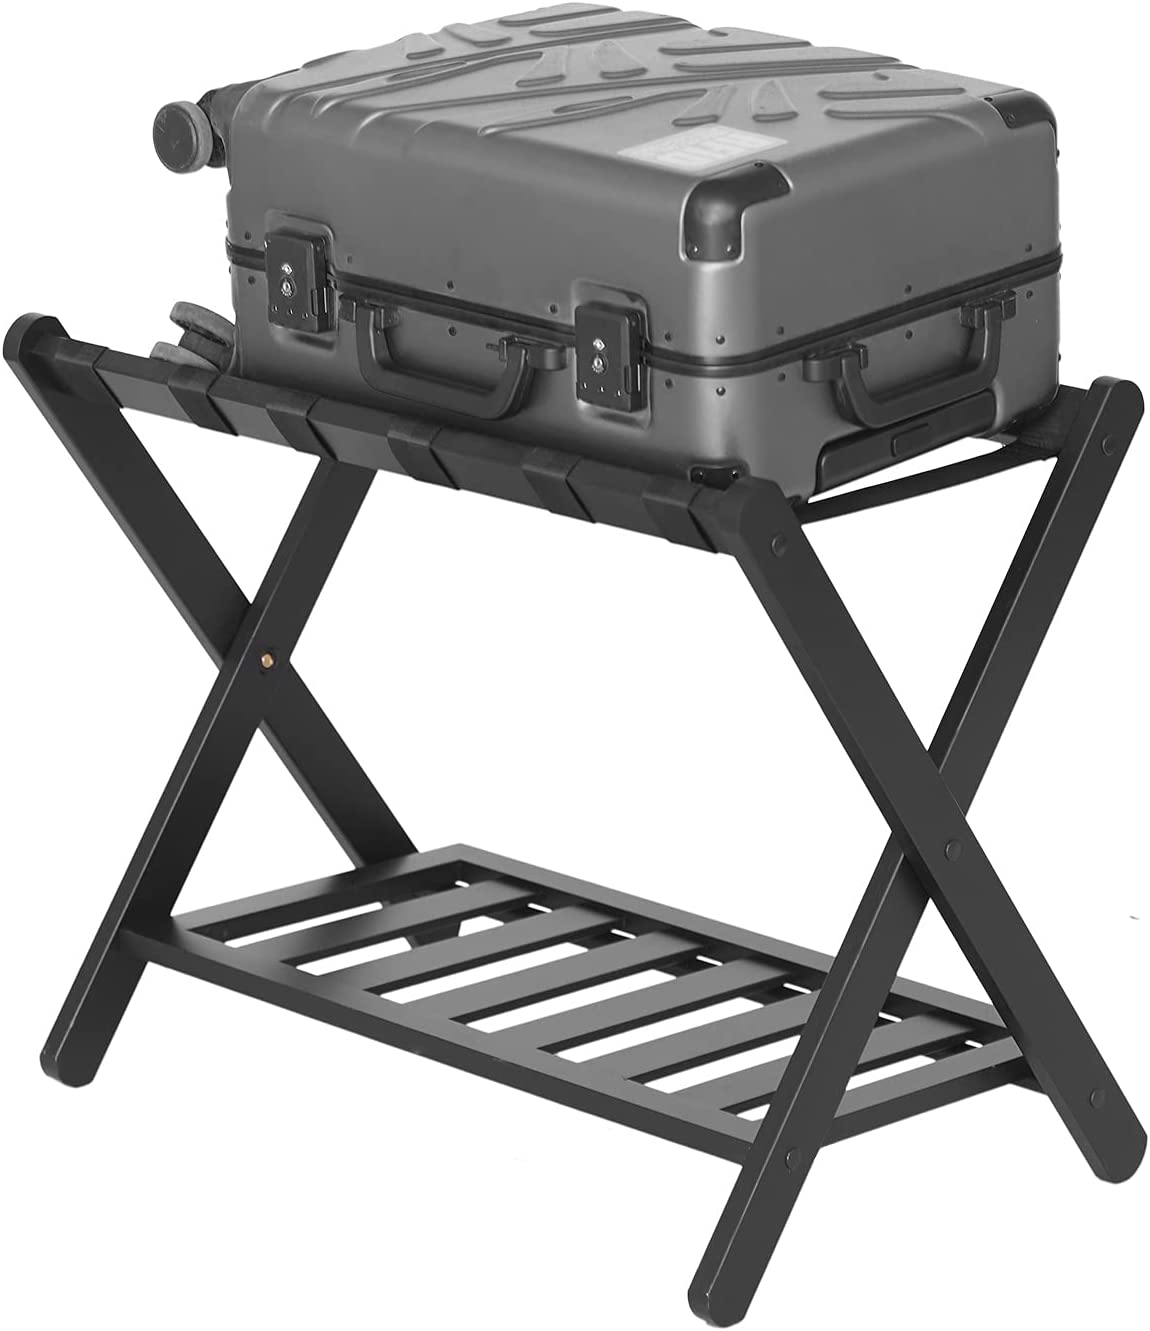 Unbrands Luggage Rack, Folding Luggage Rack for Guest Room for Home Bedroom Hote, with Shelf